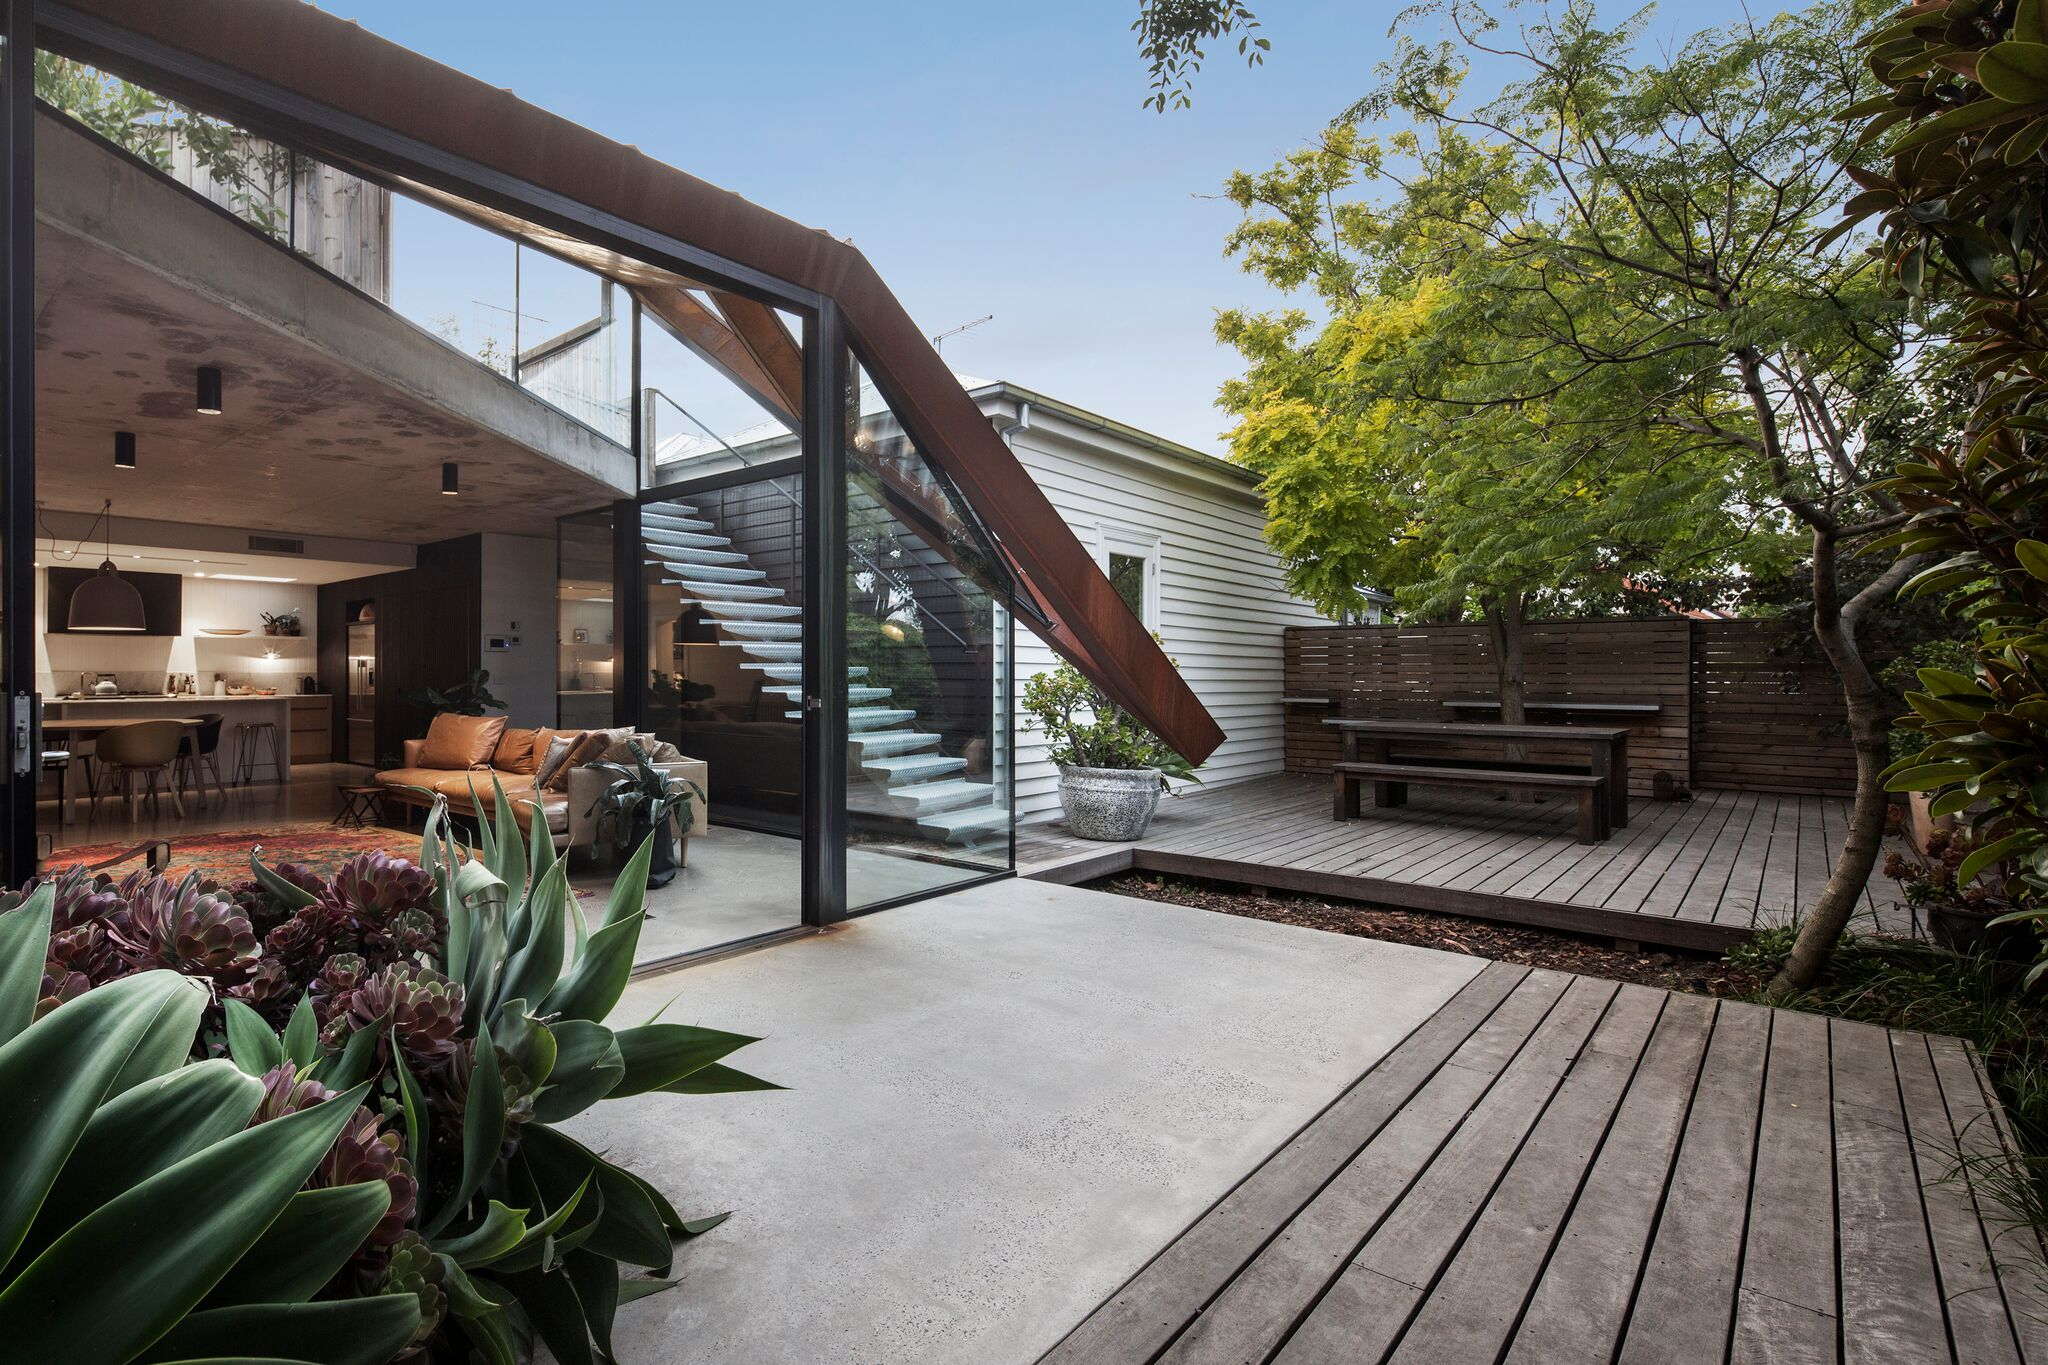 Decking - Nature - Australian Architecture - Built by Duo Built